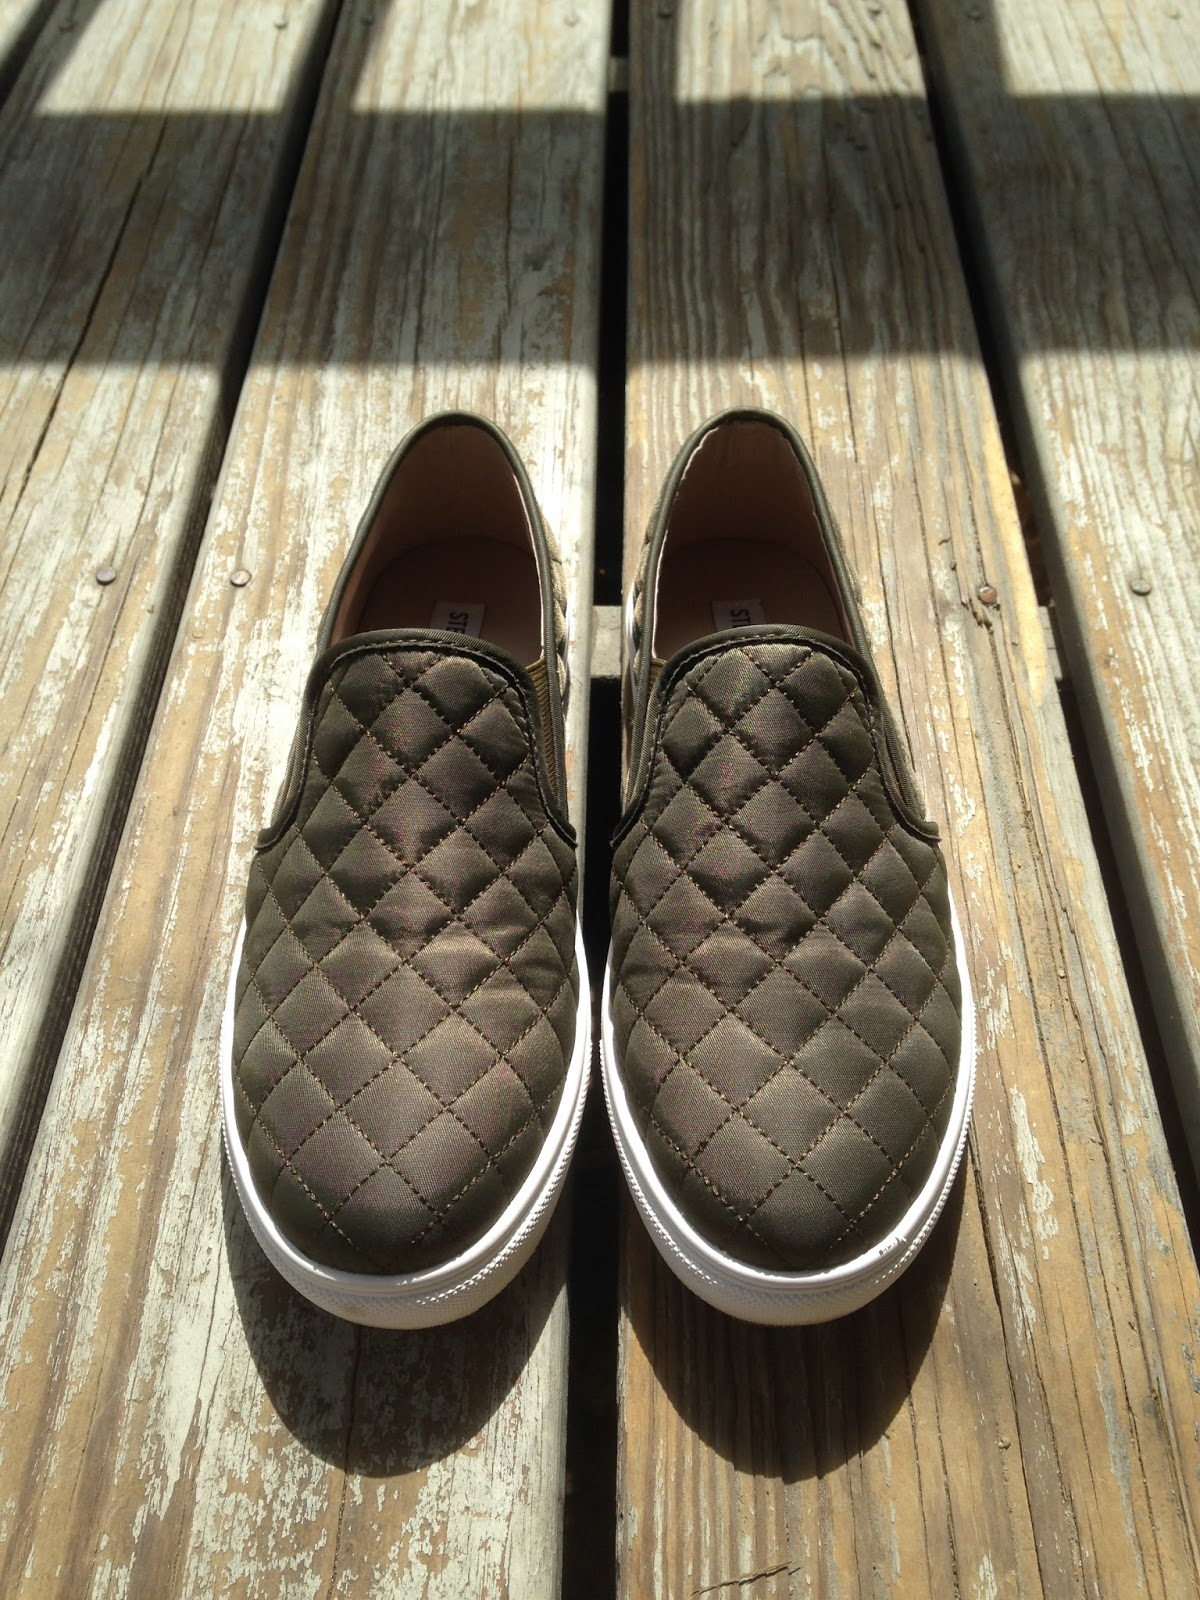 Are Vans Considered Boat Shoes